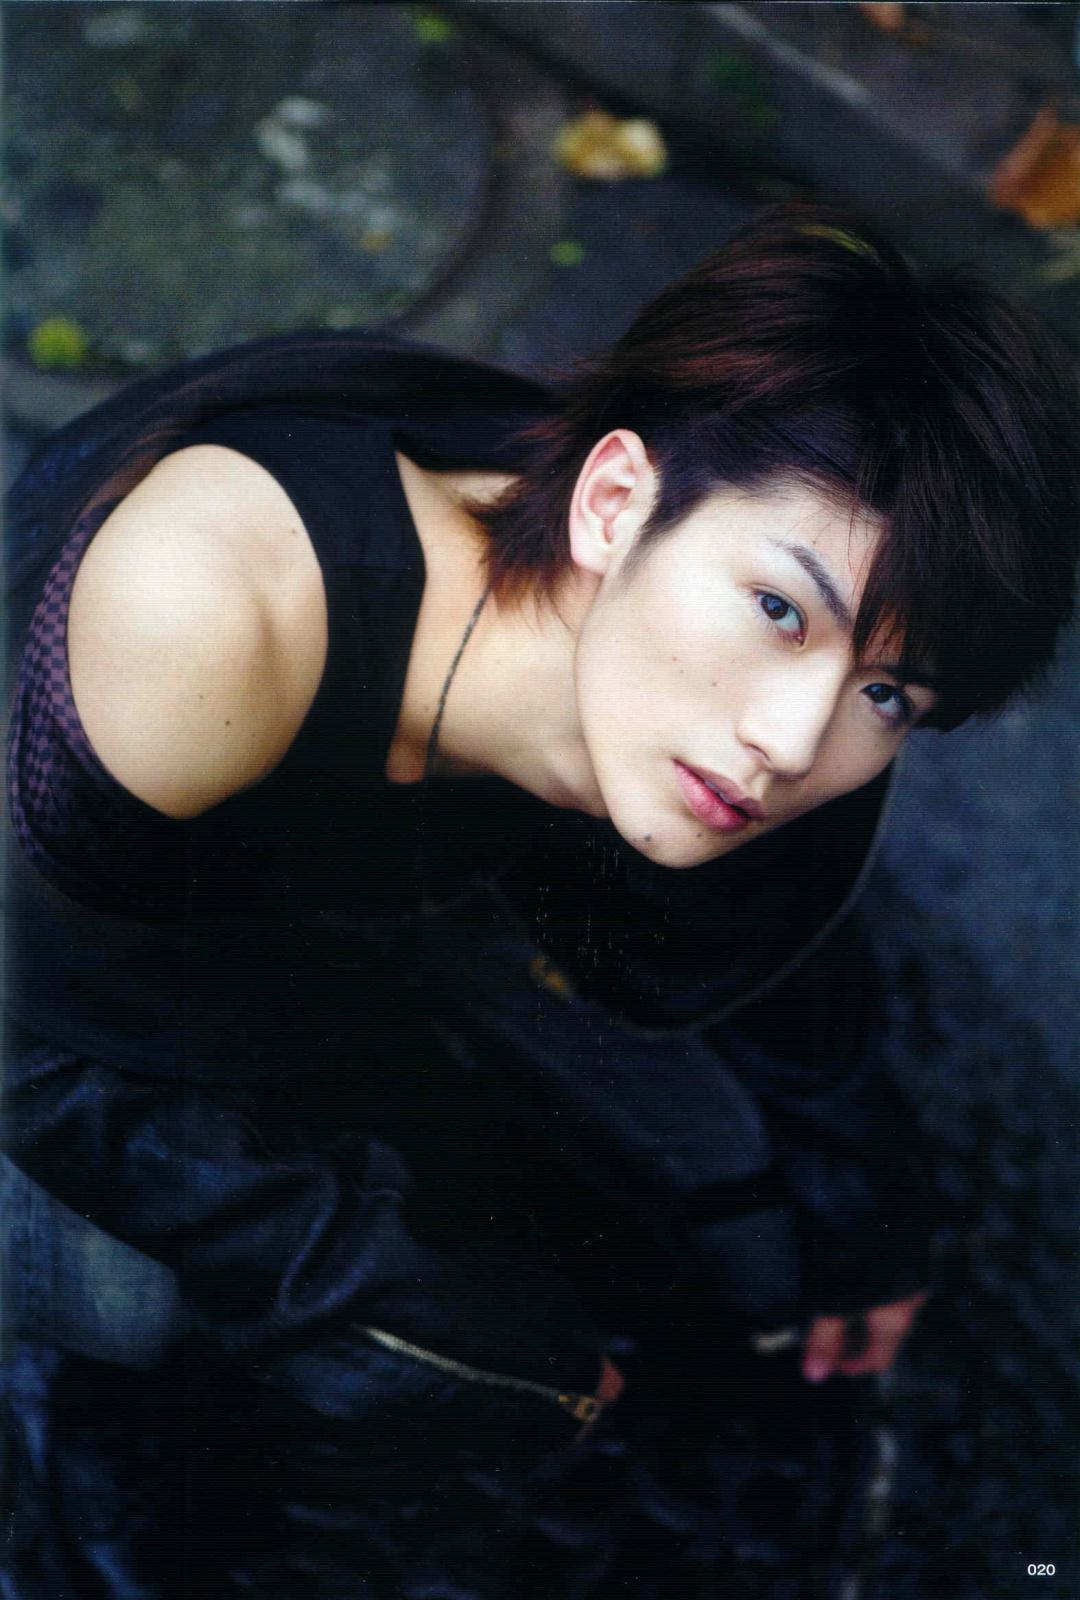 haruma yuma dating || batch-chiropractors.ga